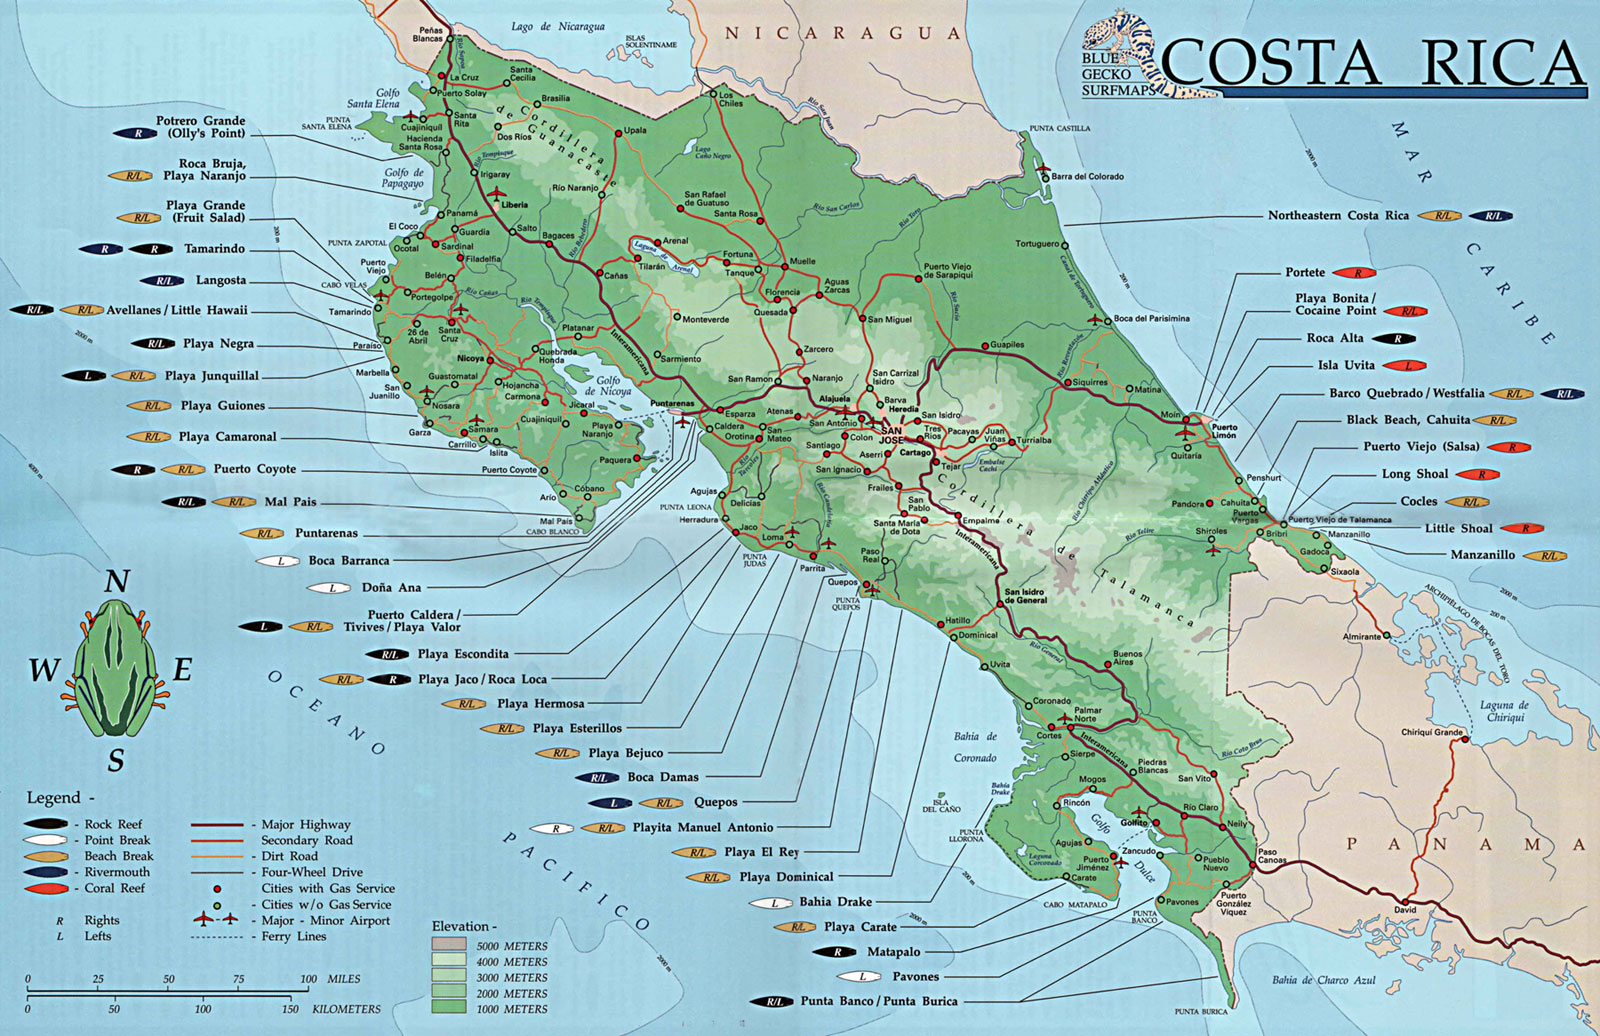 Costaricasurfmap - Map of costa rica